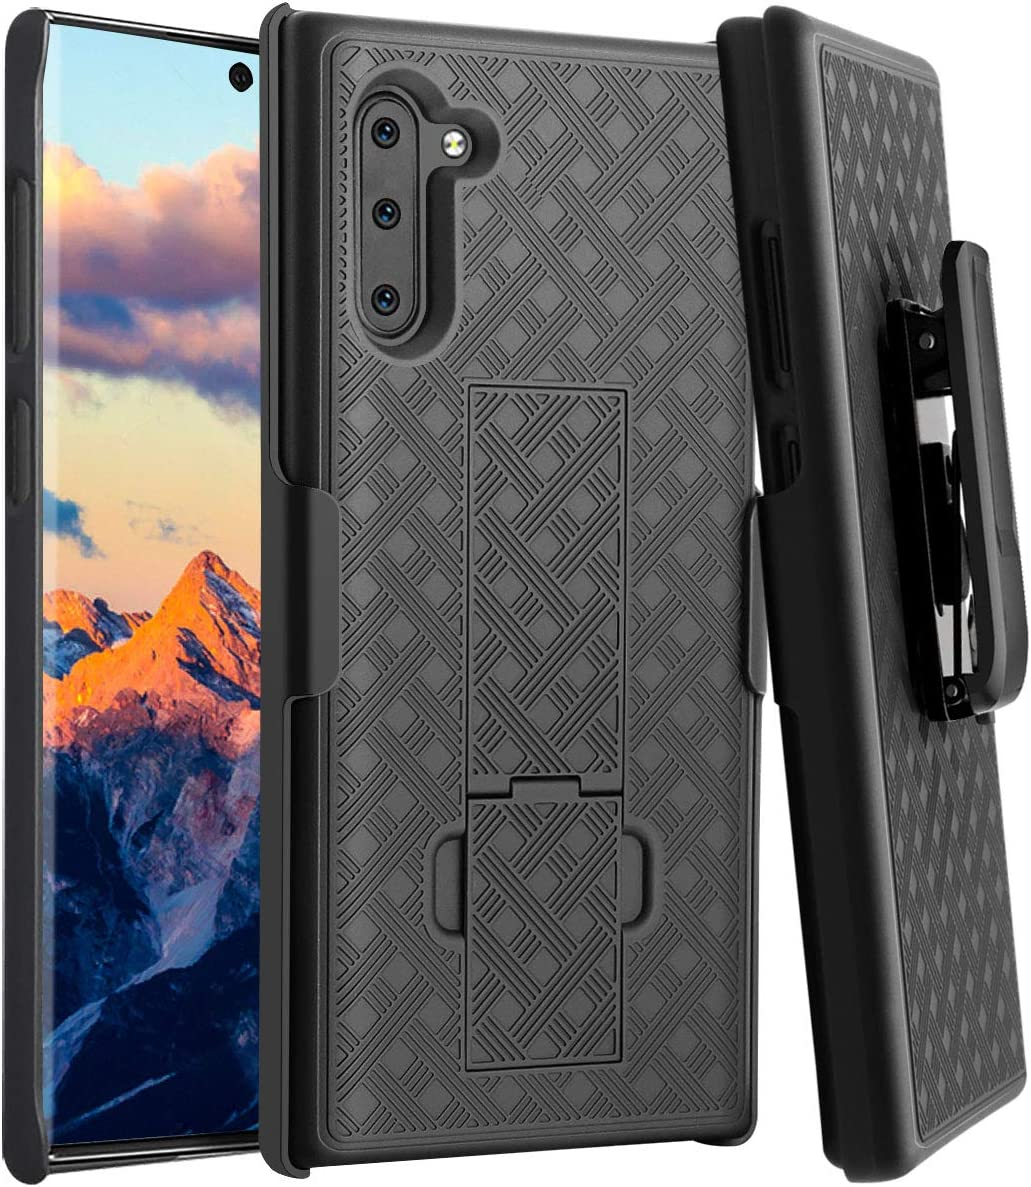 Galaxy Note 10 Case, Note 10 Holster Case, Fingic Combo Slim Shell Holster Case with Built-in Kickstand Swivel Belt Clip Holster Rugged Full Body Protective Case for Samsung Note 10 6.3 inch - Black